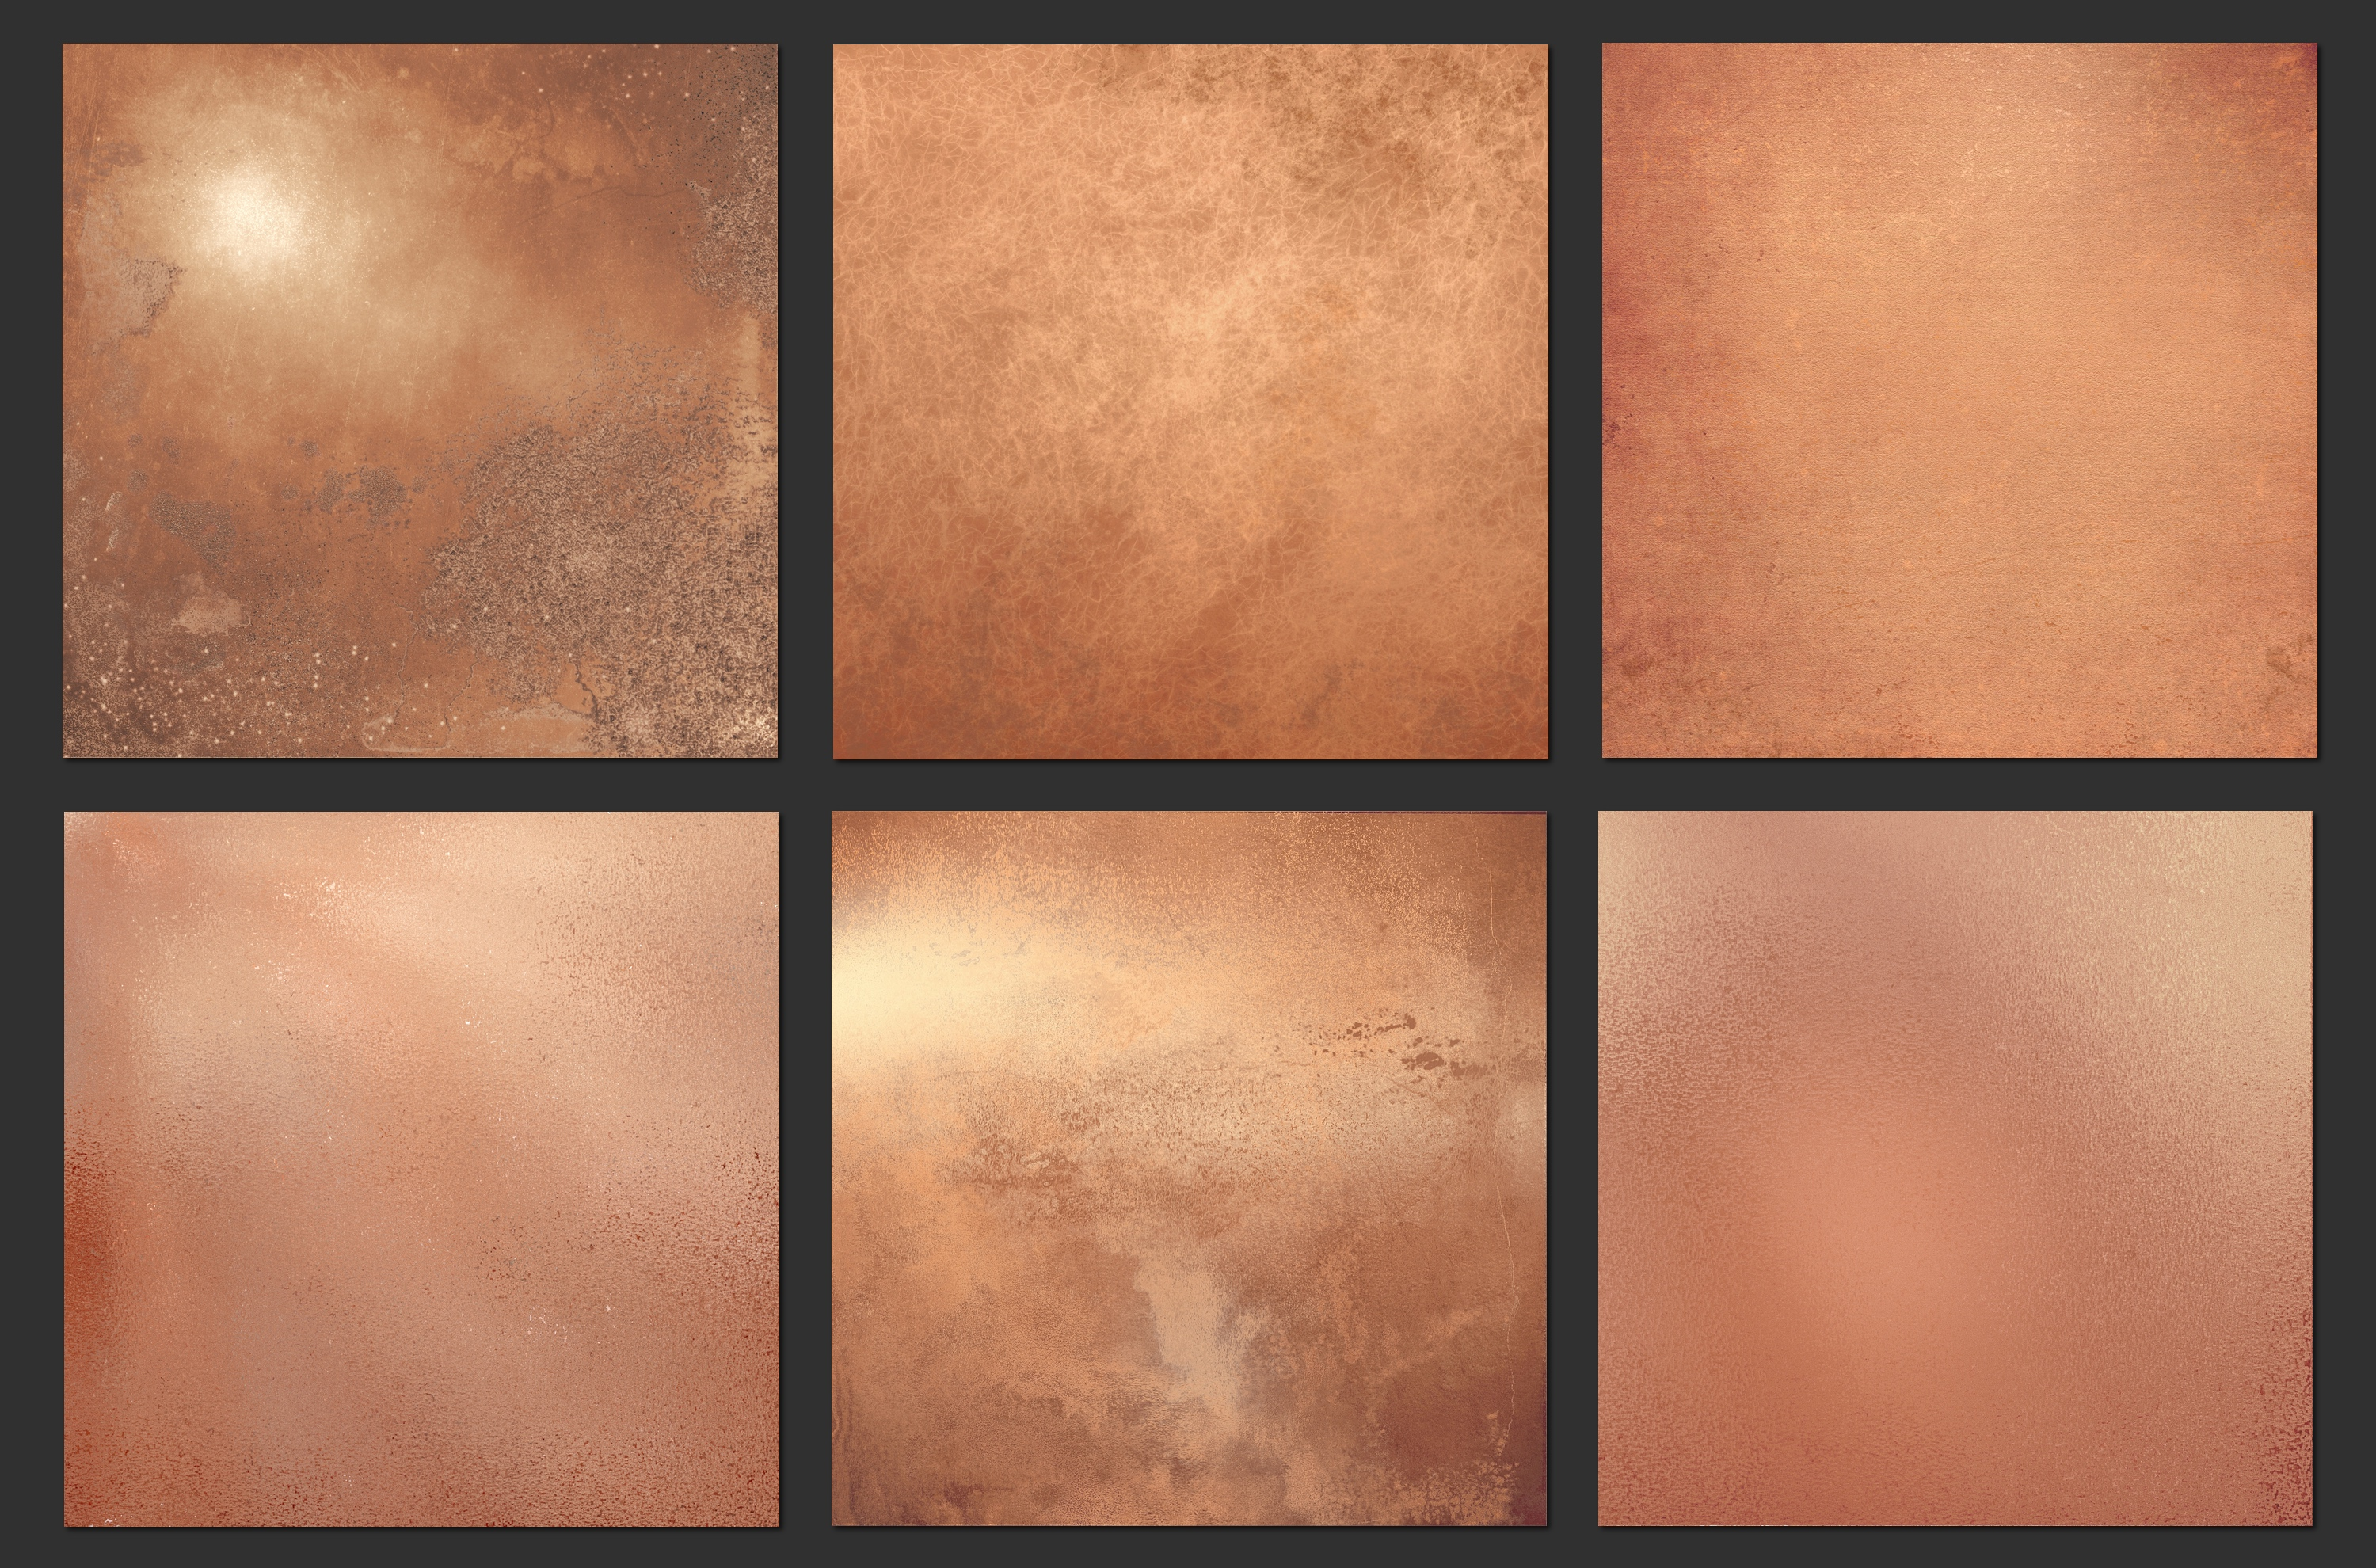 Aged rose gold textures example image 3